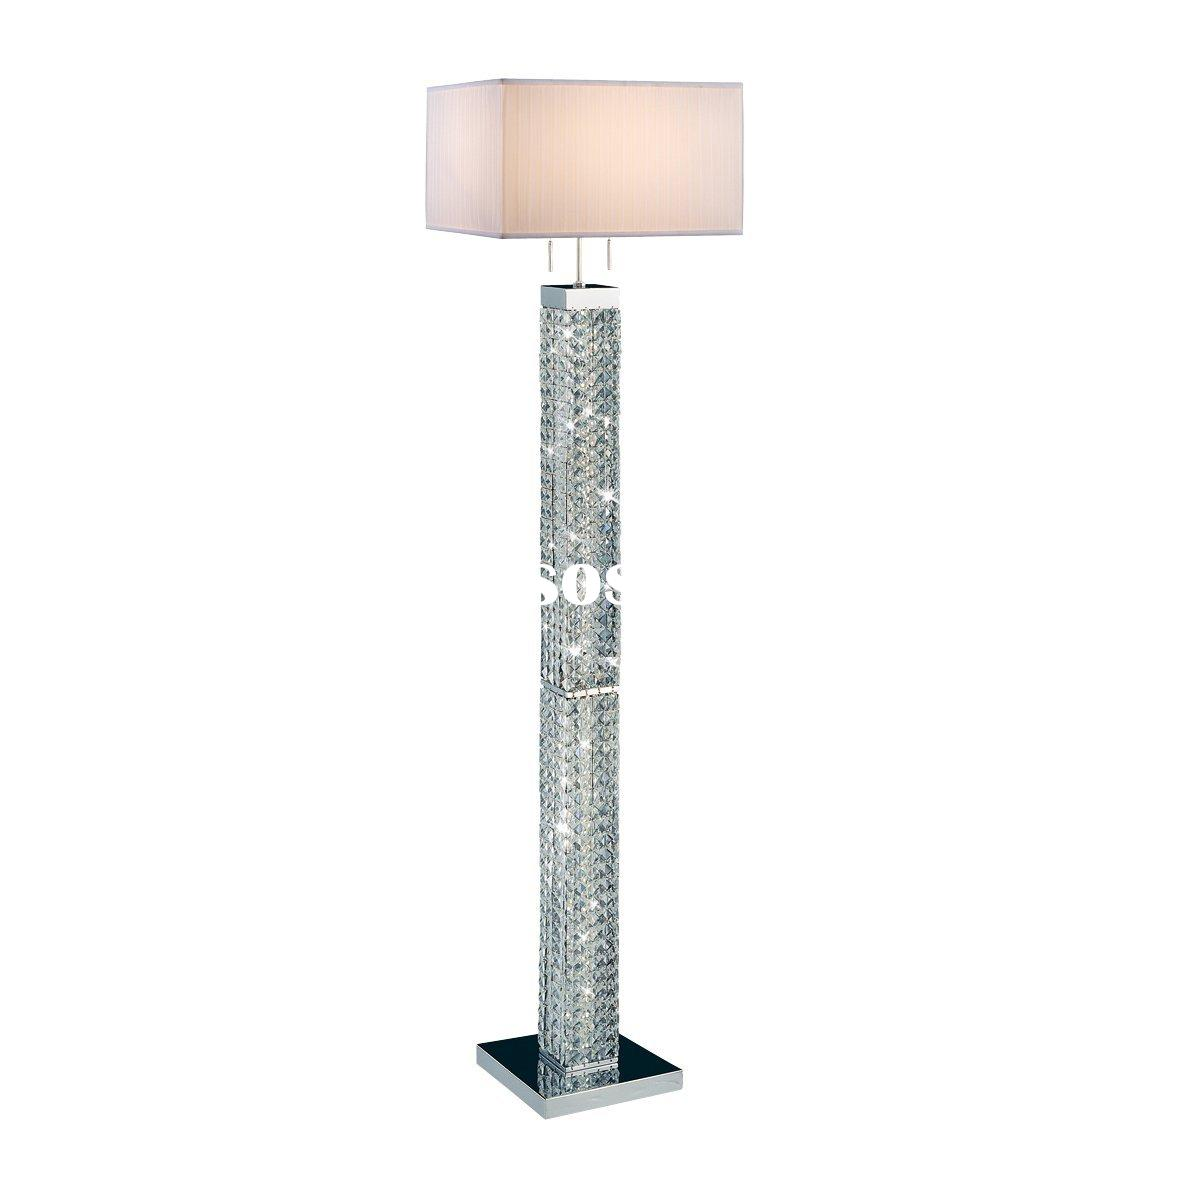 Cheap Stand Up Lamps Let Floor Lamp Crystal Illuminate Your Home And Personal